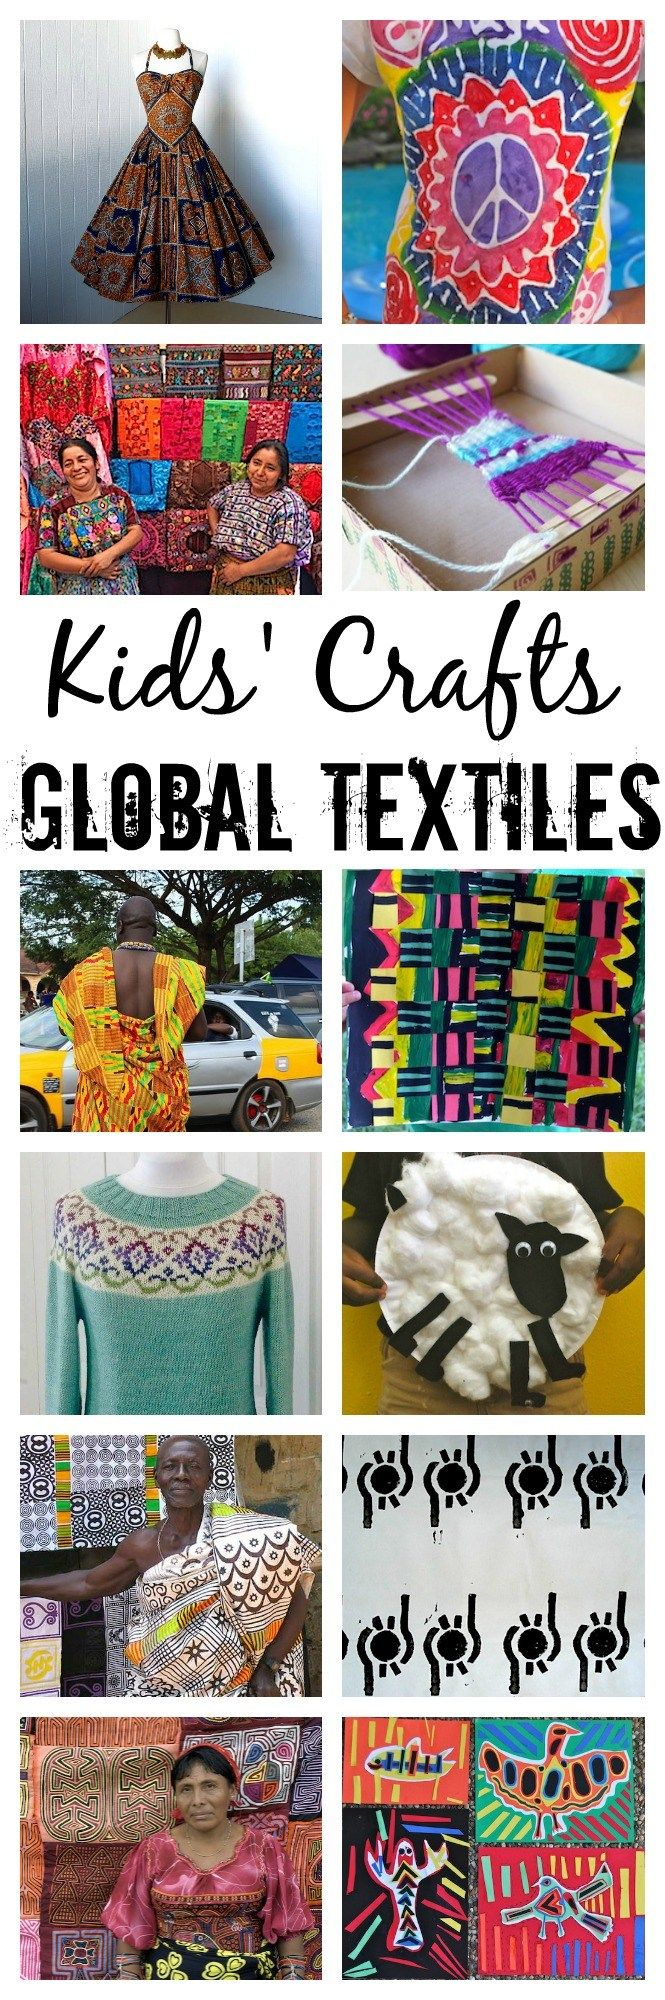 Global Textiles: learn about beautiful fabrics from around the world, and then make an inspired, colorful, multicultural craft!